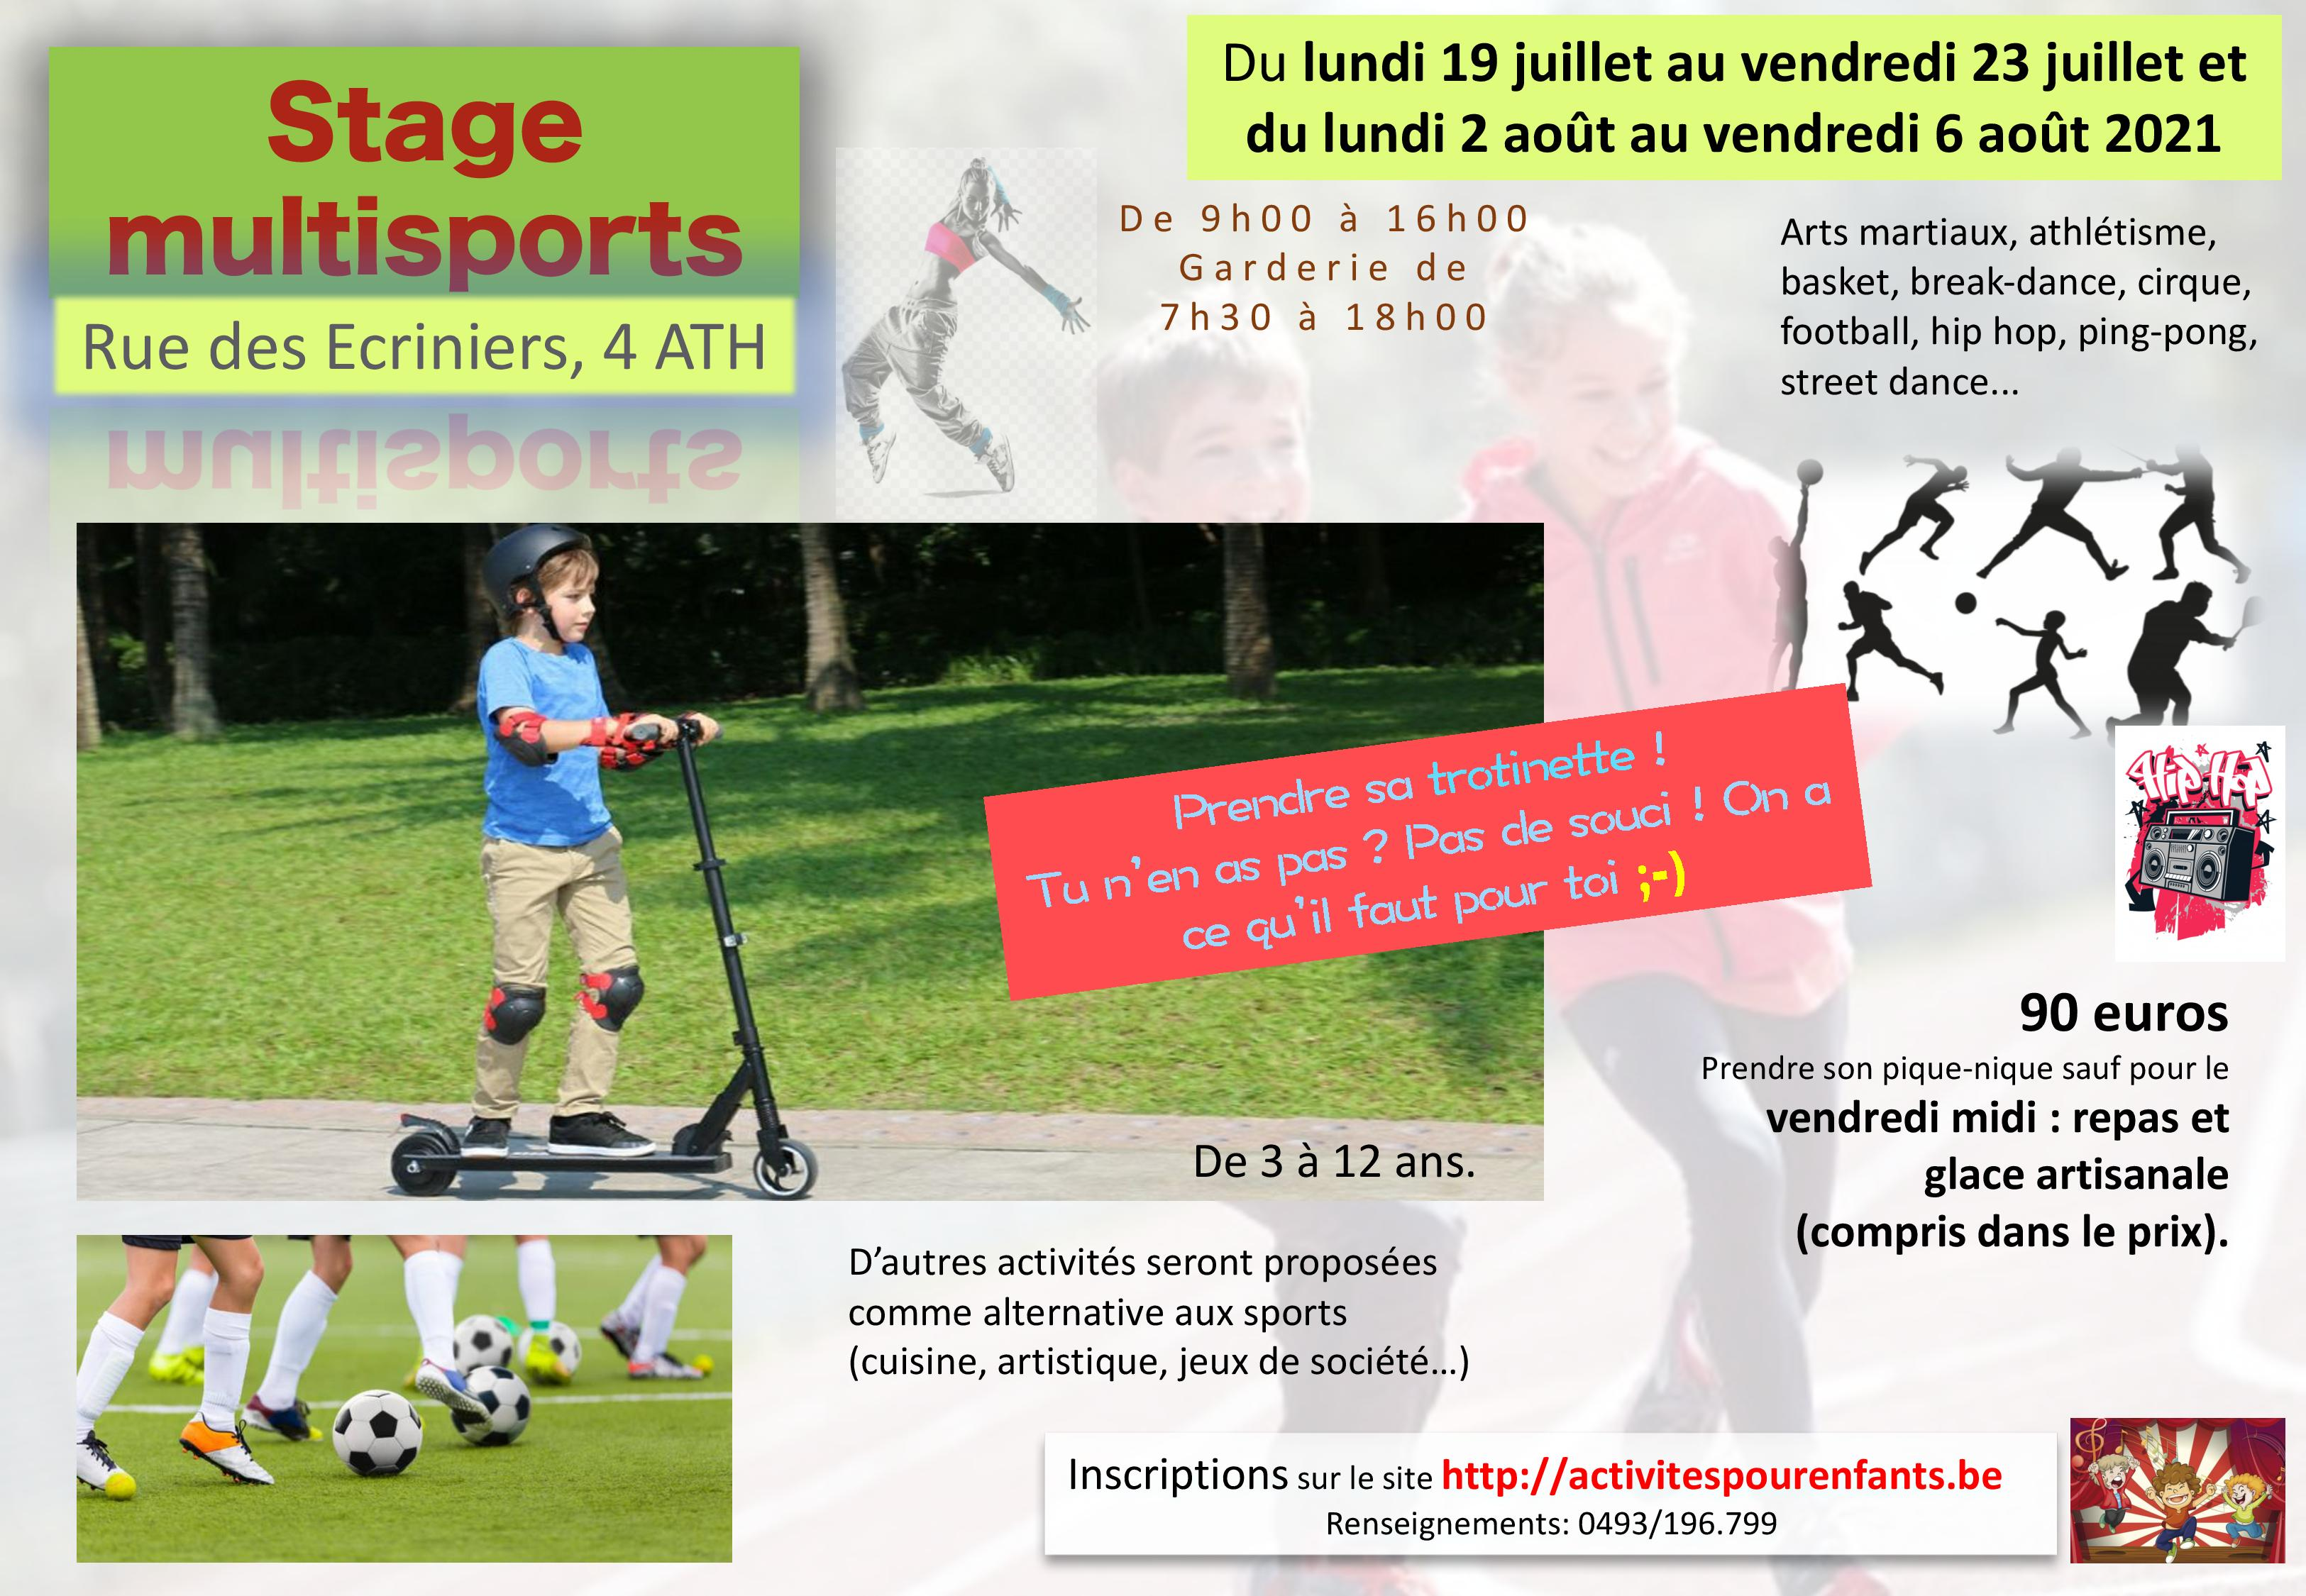 Stage multisports Ath